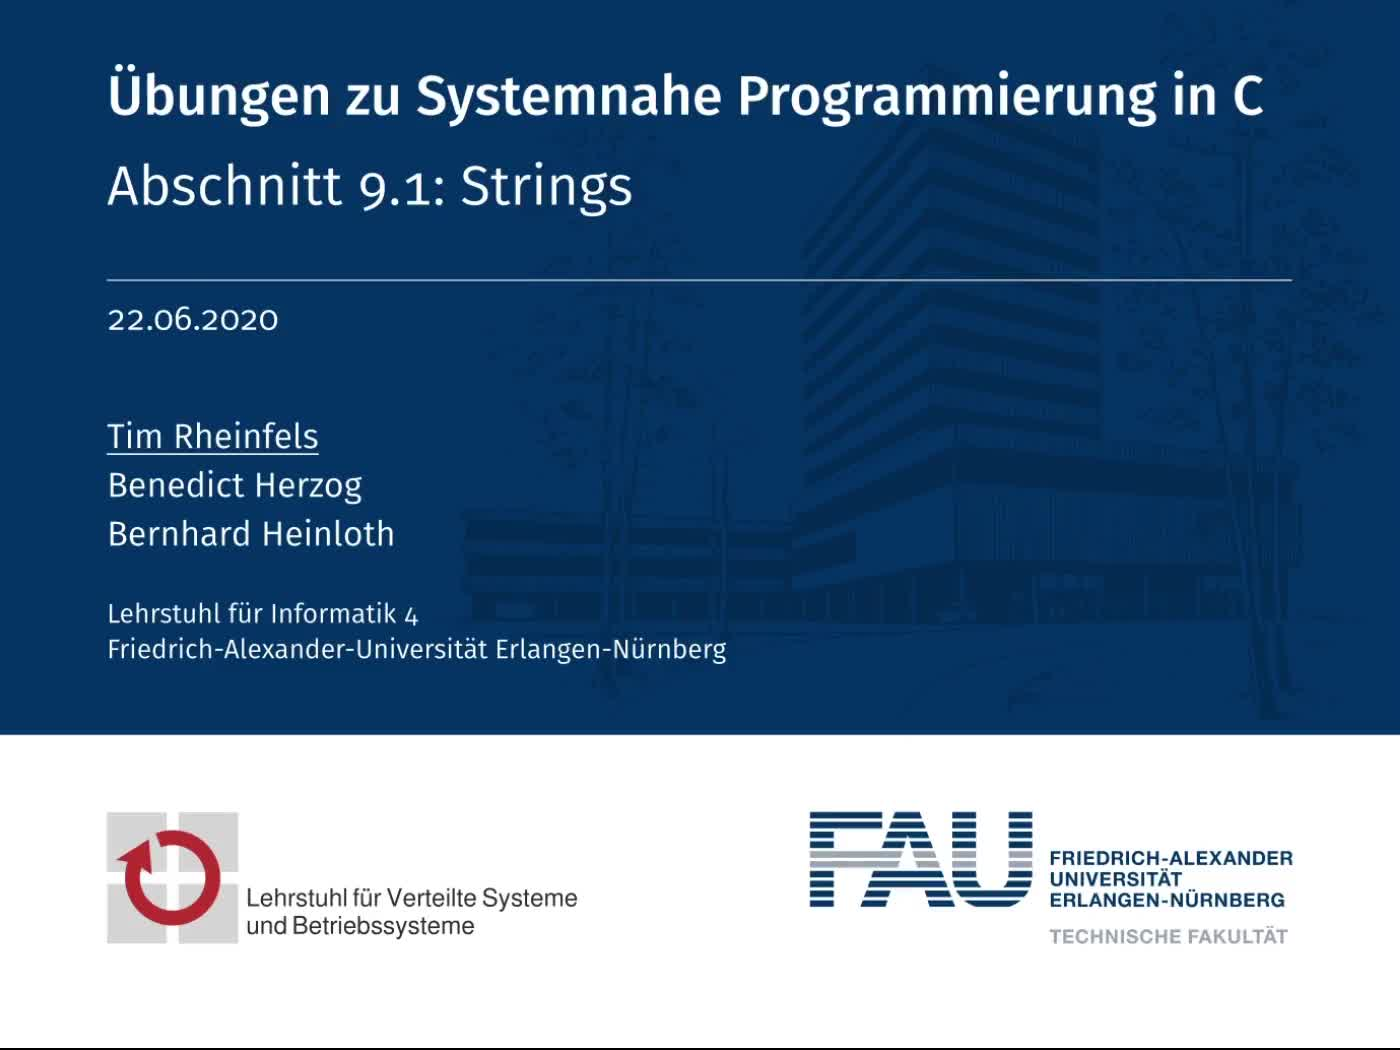 09.1: Strings preview image